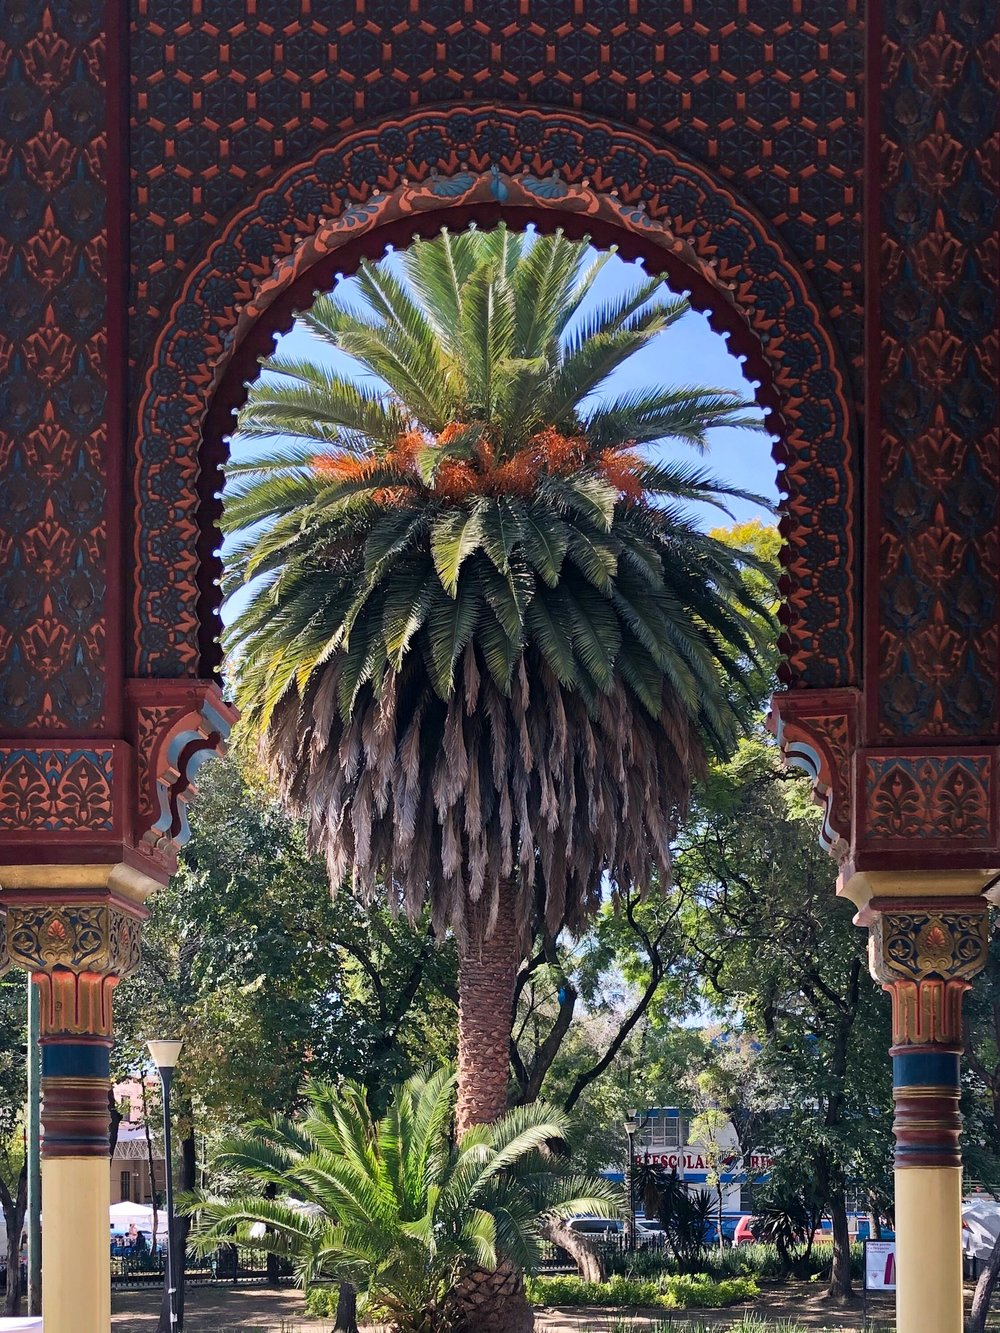 Tropical foliage framed by the pavilion's arch